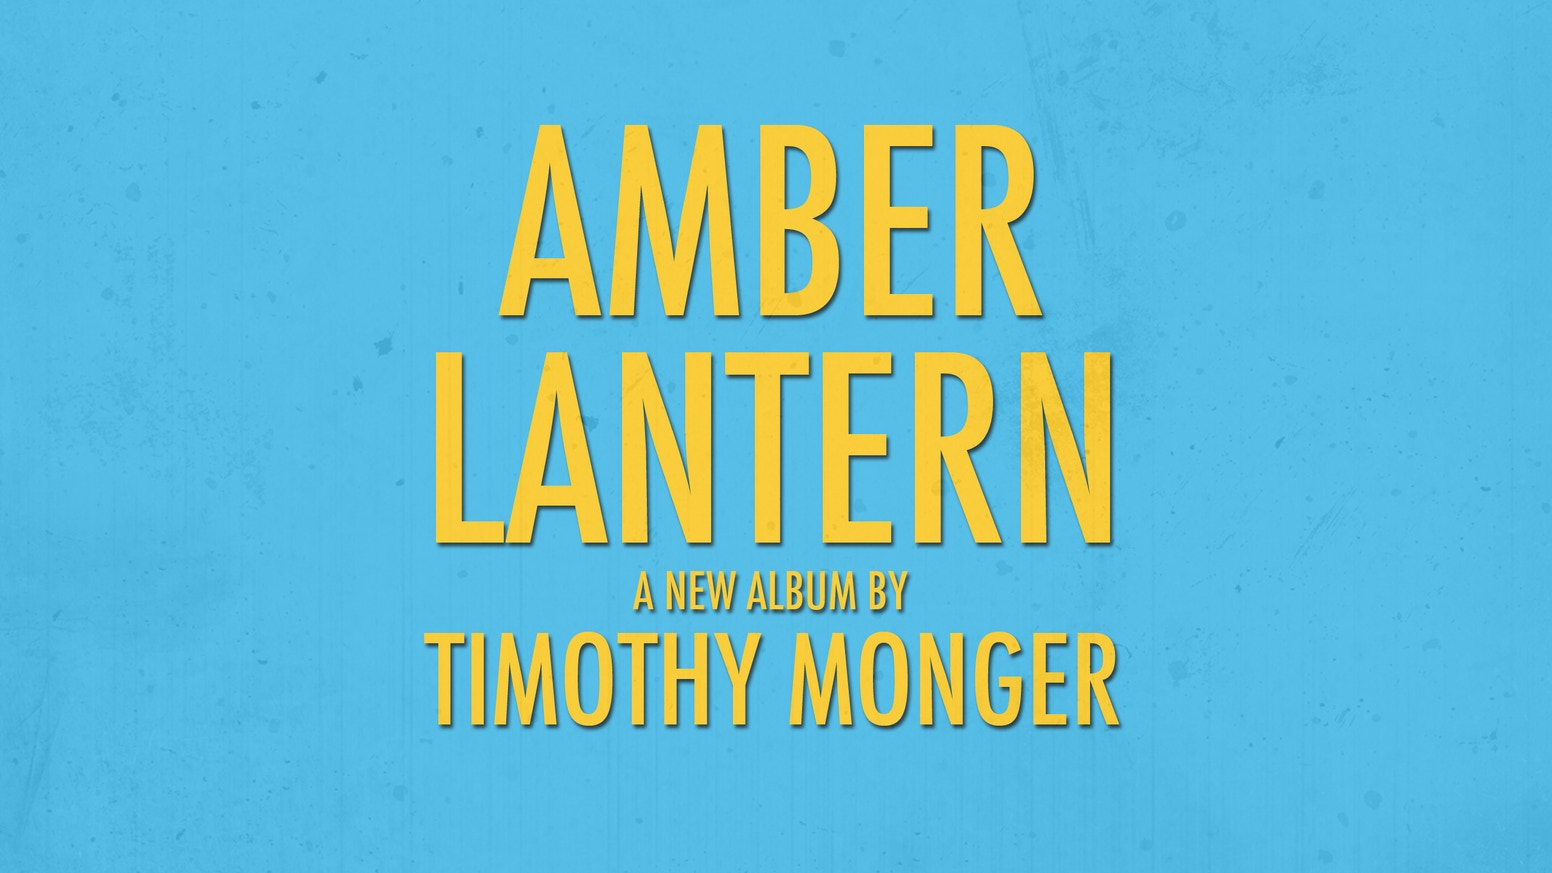 Amber Lantern is the third solo album by Michigan-based singer/songwriter Timothy Monger. Tightly-crafted guitar pop with a warm glow.